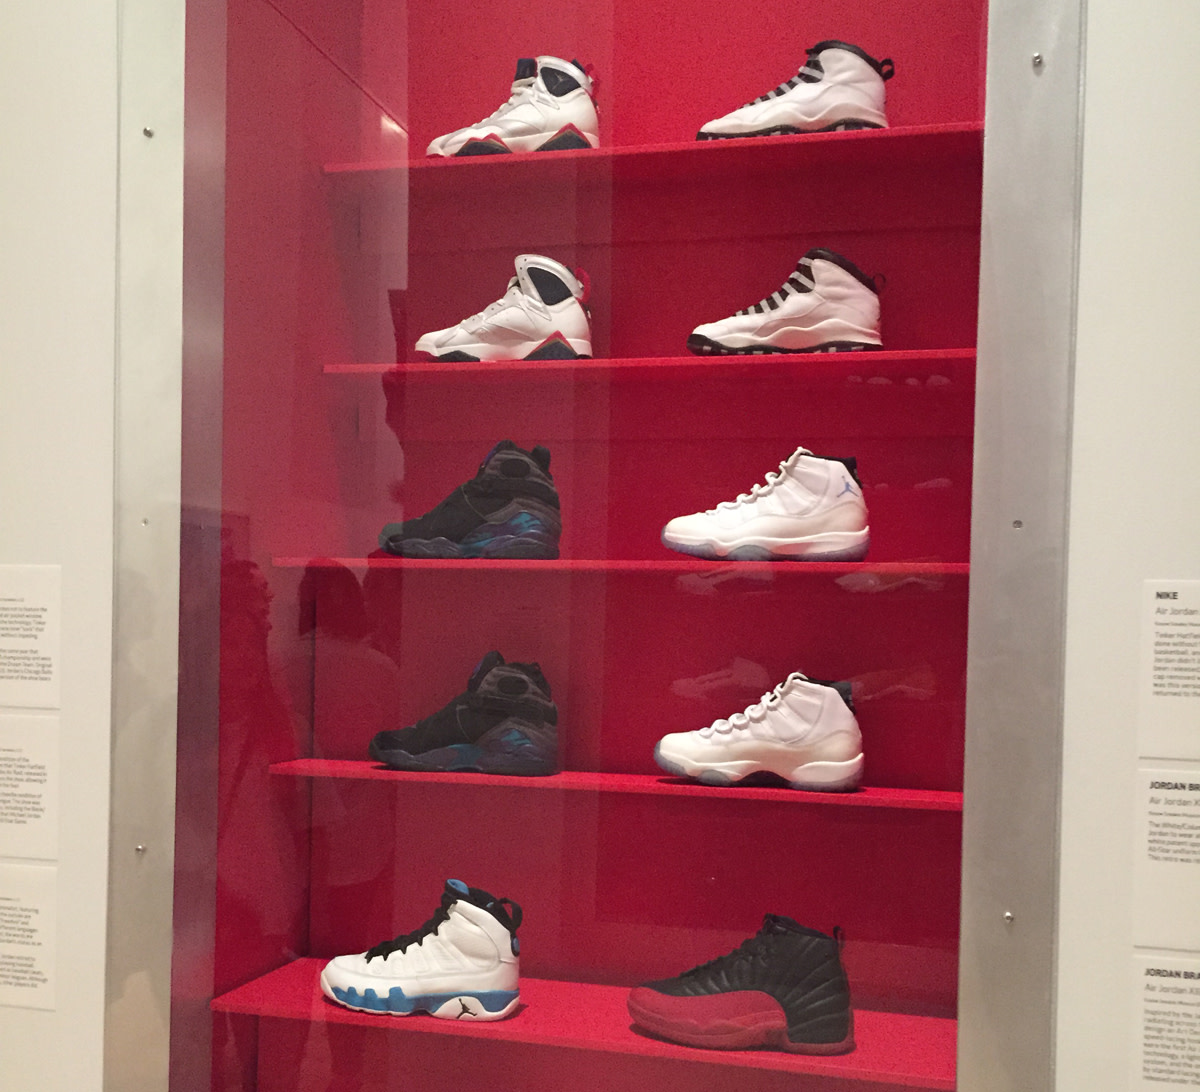 rise-of-sneaker-culture-exhibit-22